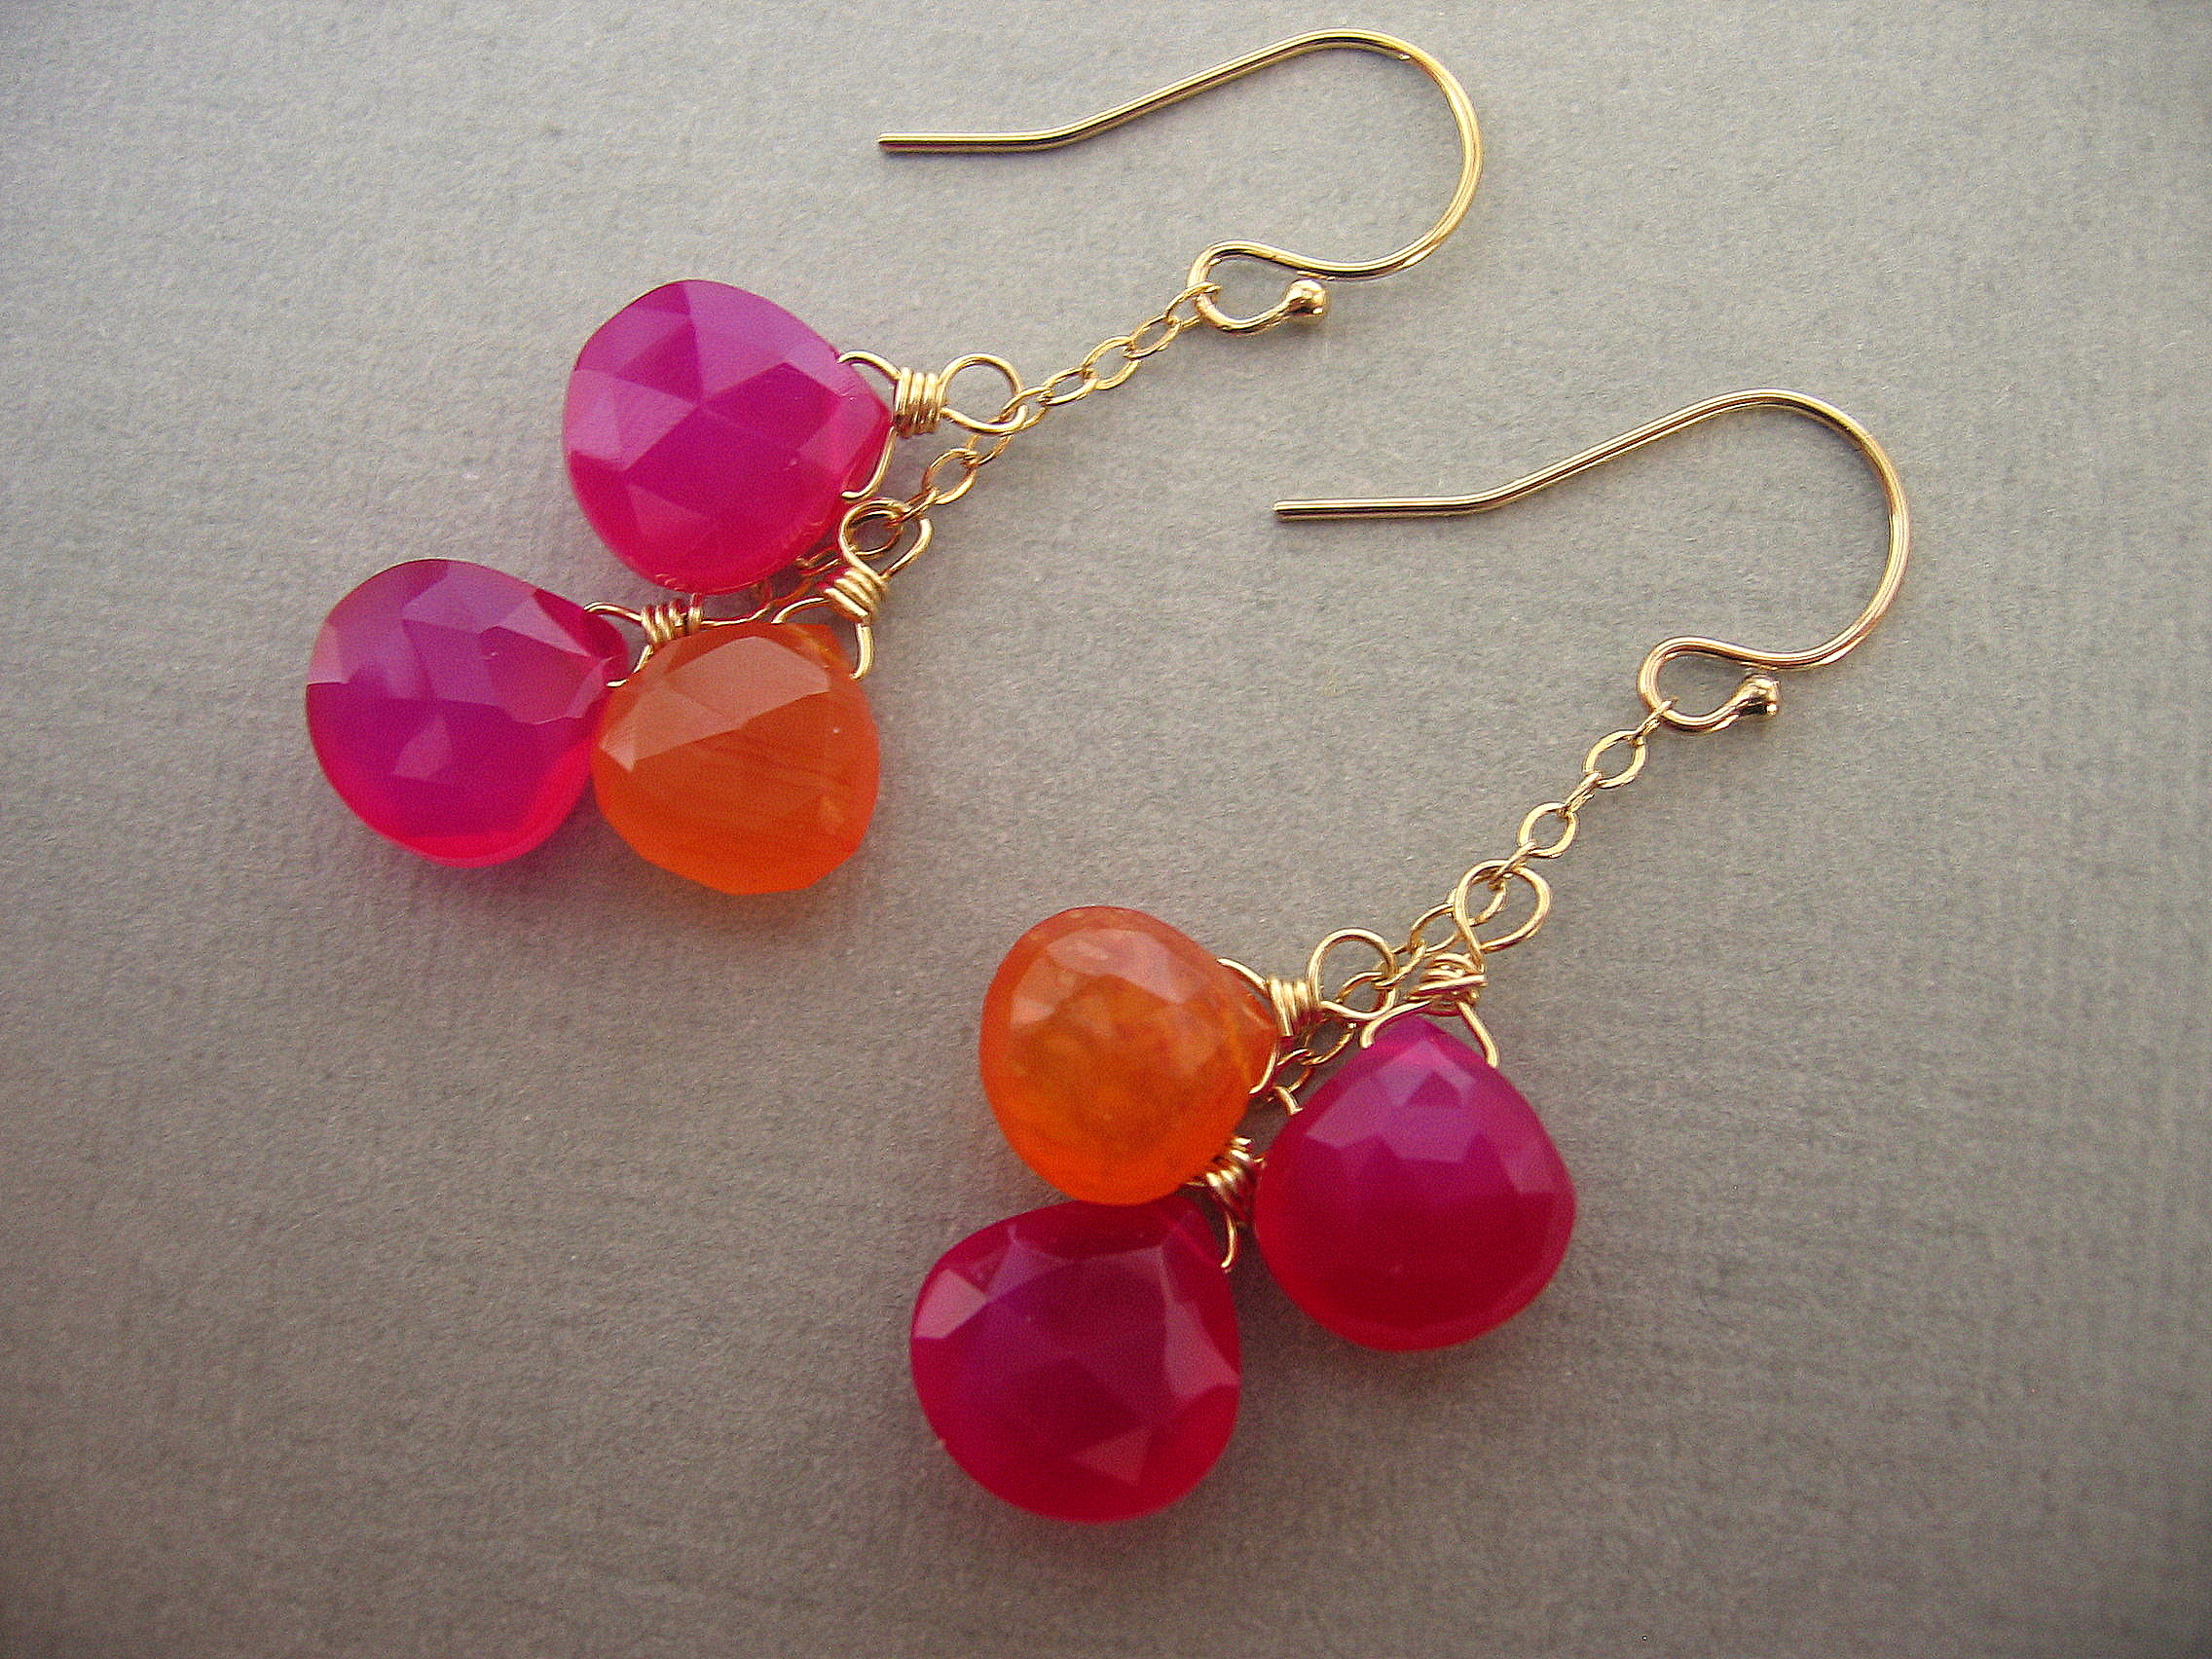 earrings pin fuschia pinterest chandelier jewelry